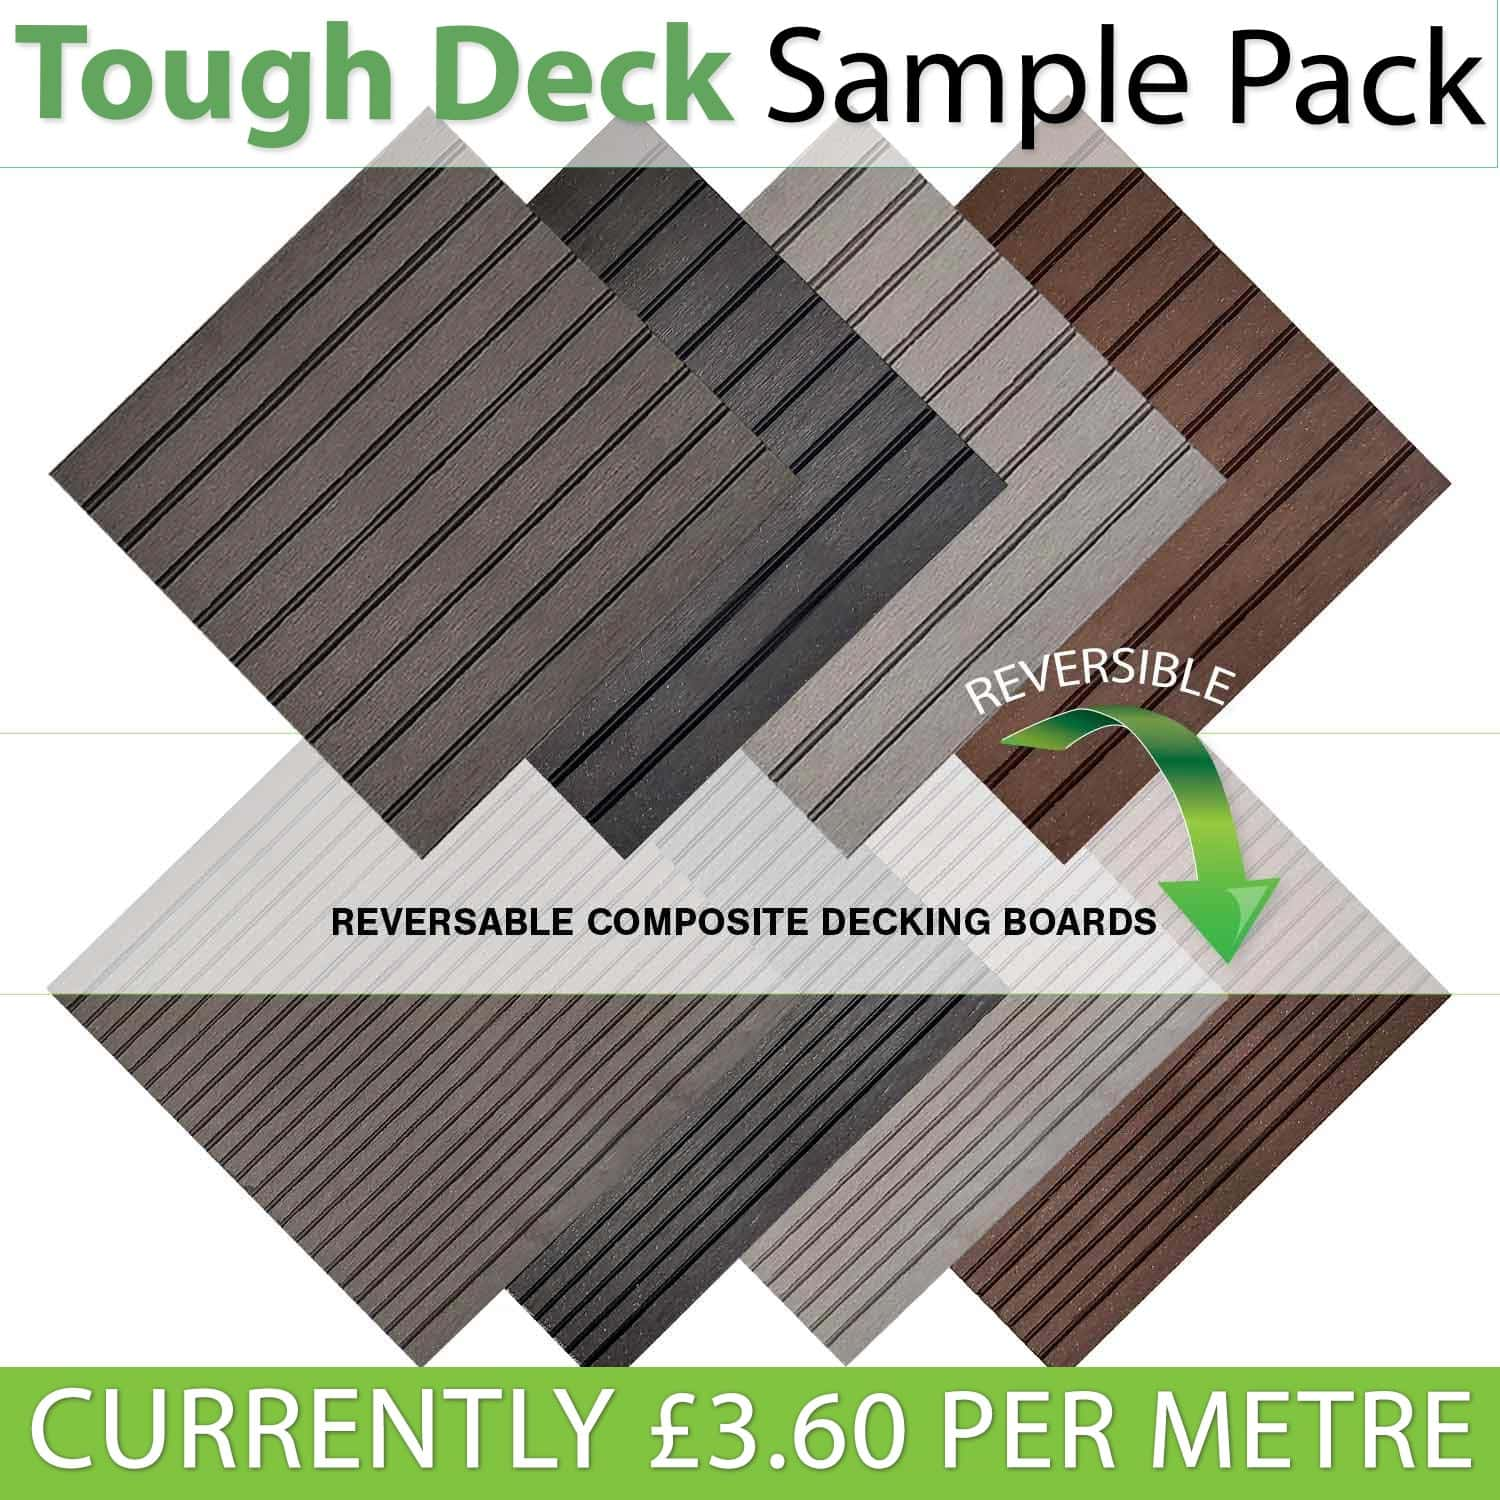 Composite decking samples pack black grey and teak for Best composite decking material reviews